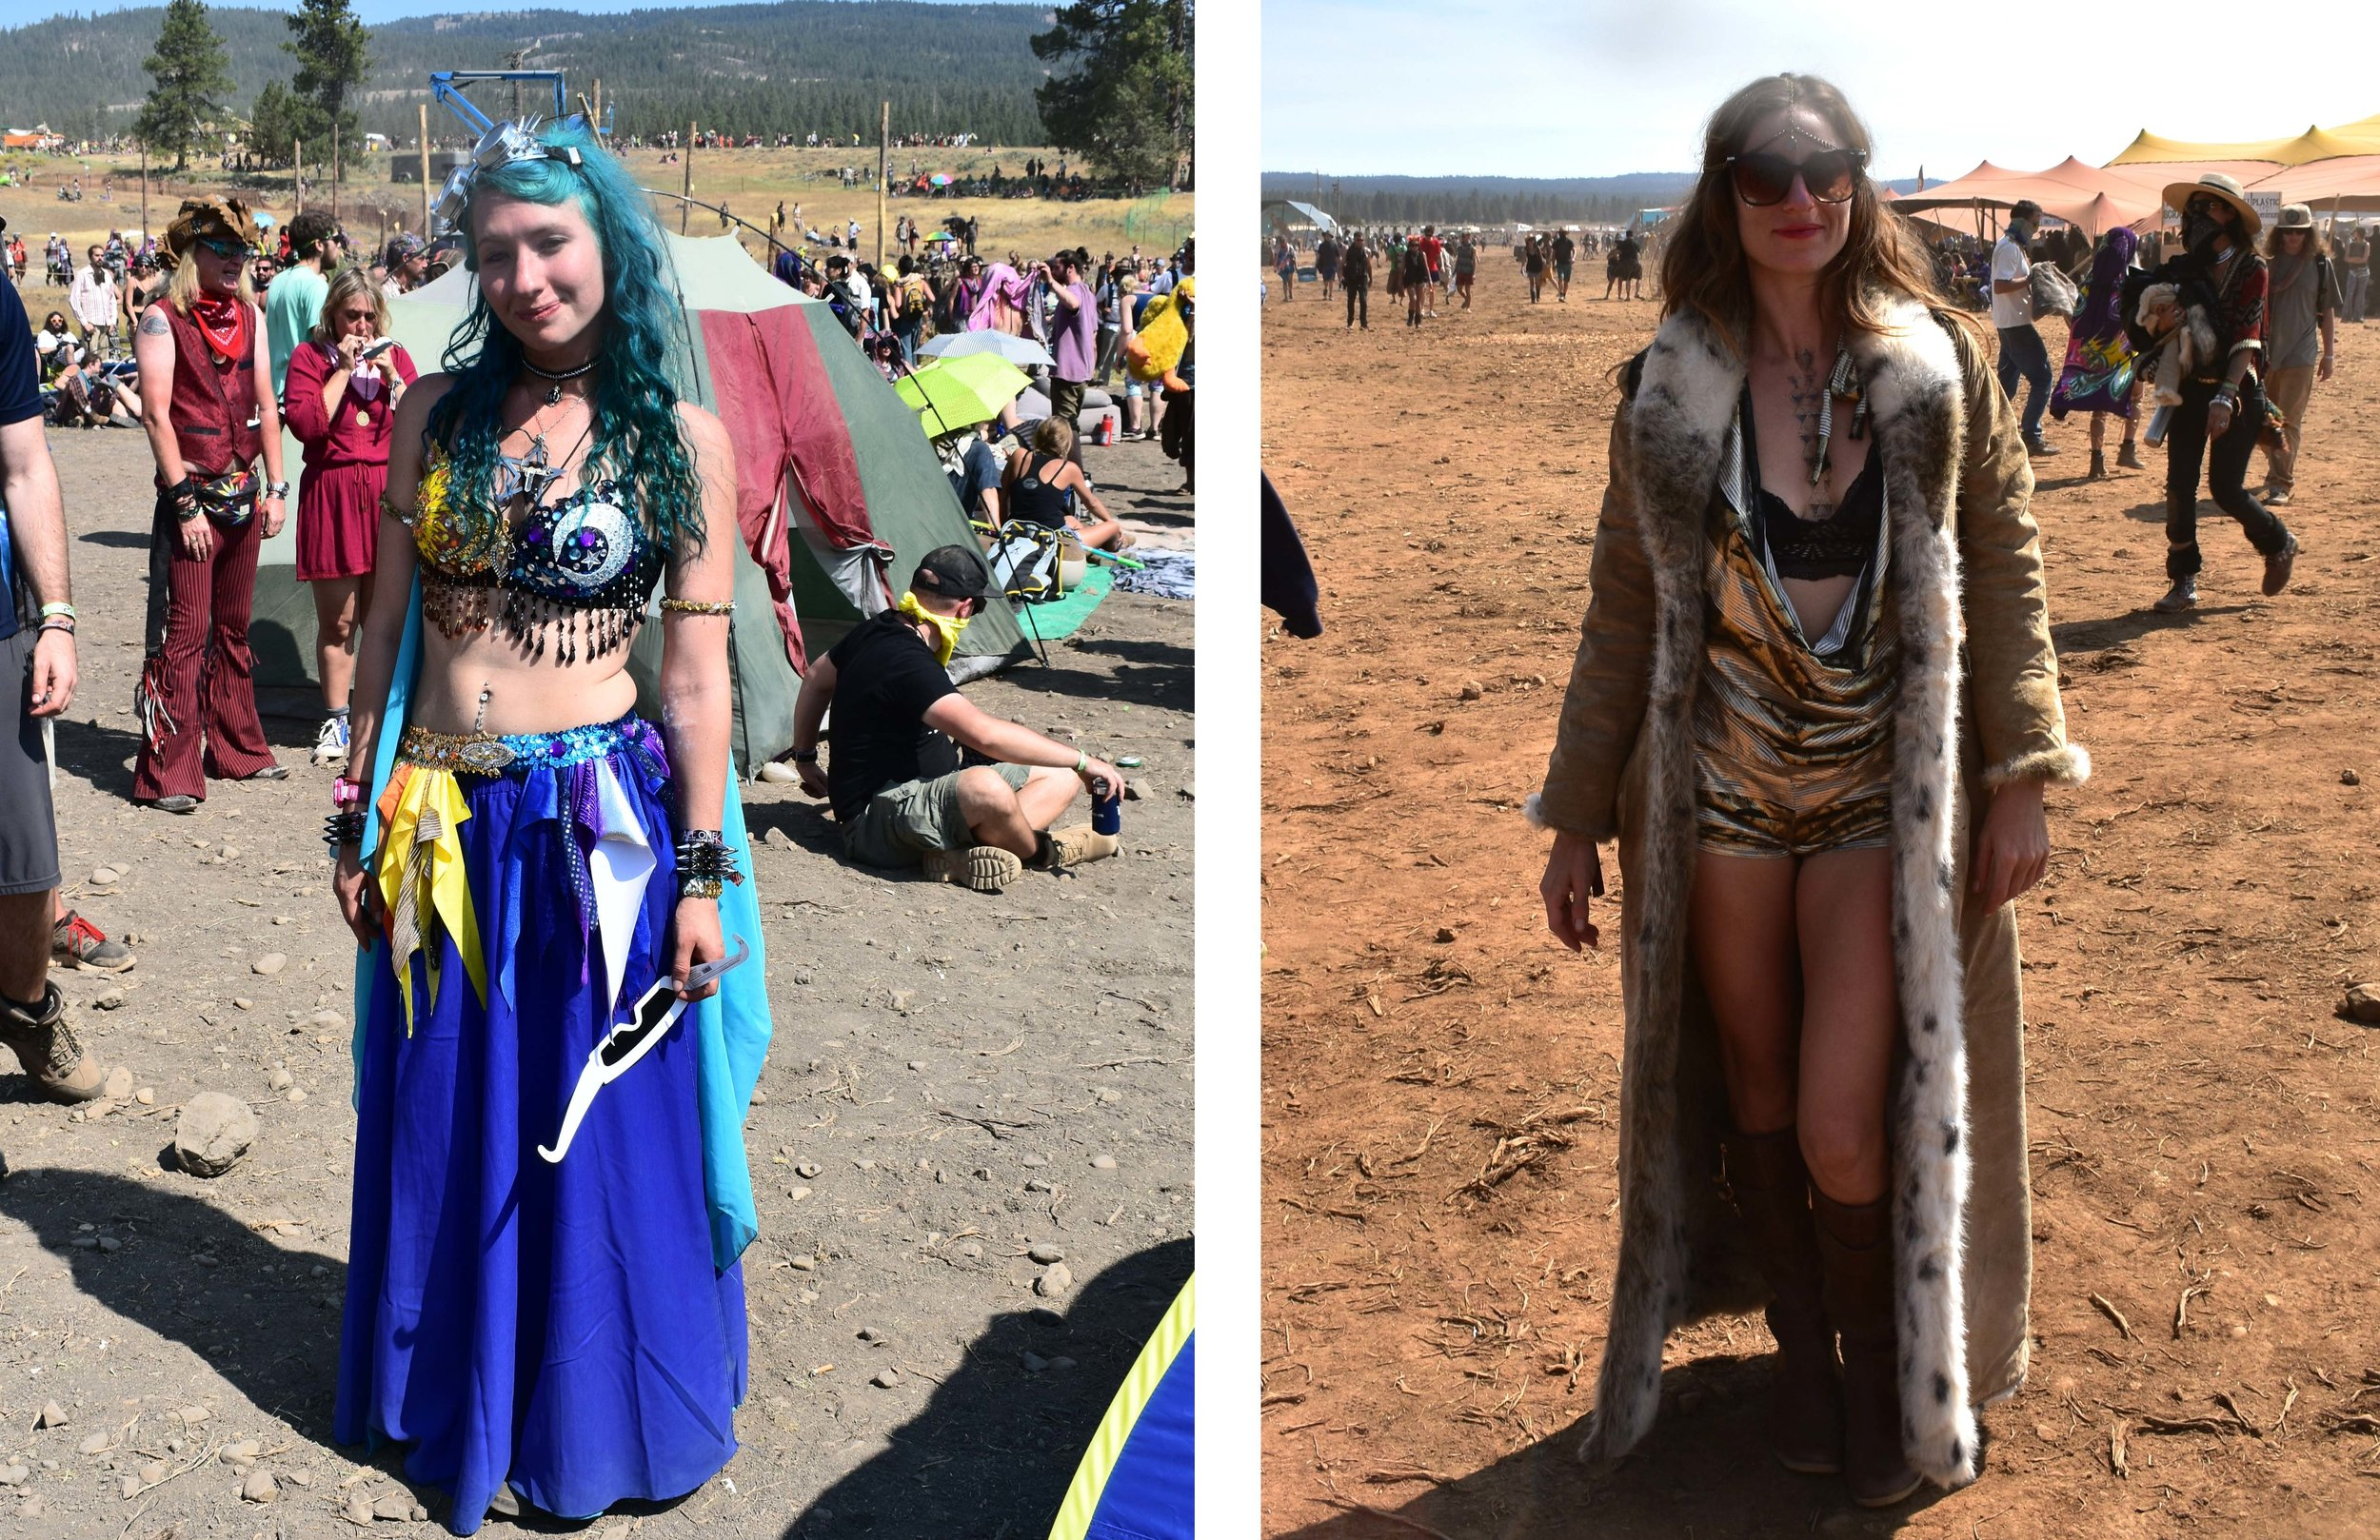 Oregon Eclipse 2017 -Symbiosis - Envision Festival - Sonic Bloom - Rainbow Serpent - Jaded London - Chrome Monarchy - Style Guide - Florum Magazine - Hadra - Global Gathering - Lighting in a Bottle - dirty bird campout - burning man babes - vintage suede fur jacket - betabrand